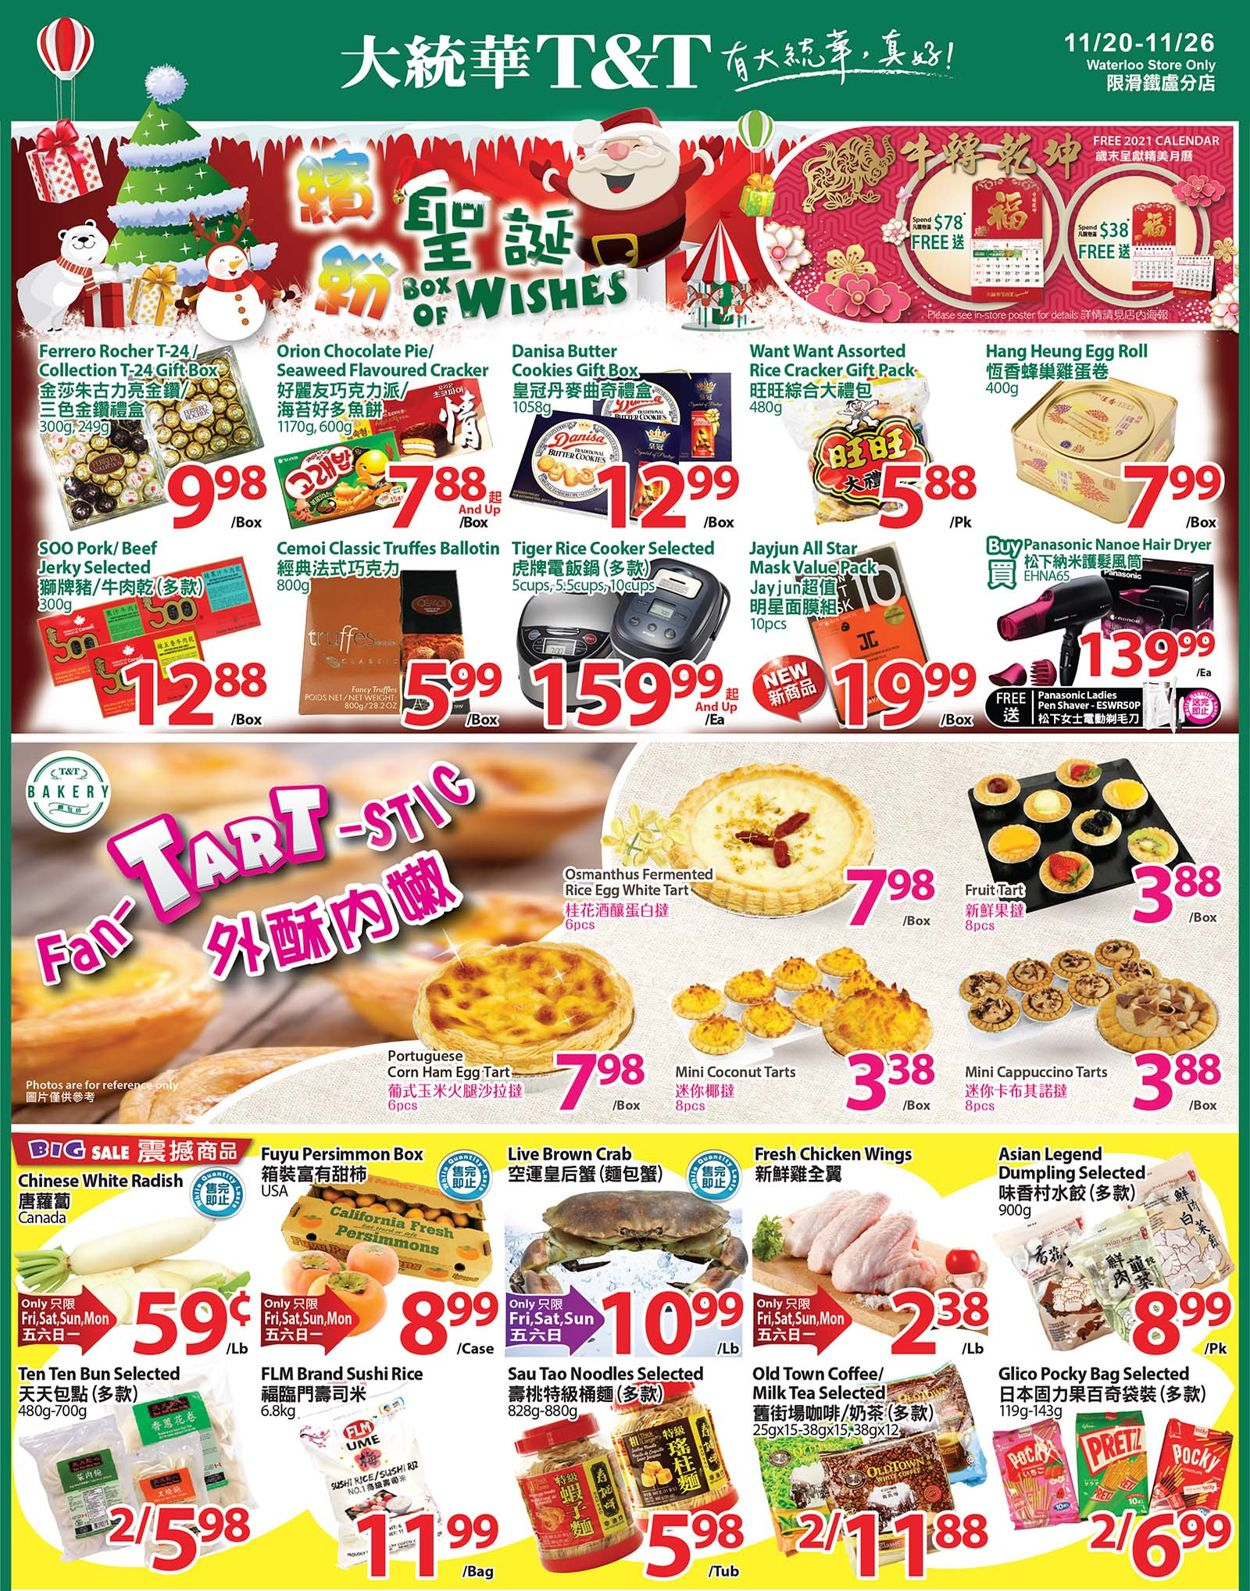 T&T Supermarket Waterloo Black Friday 2020 - Waterloo Flyer - 11/20-11/26/2020